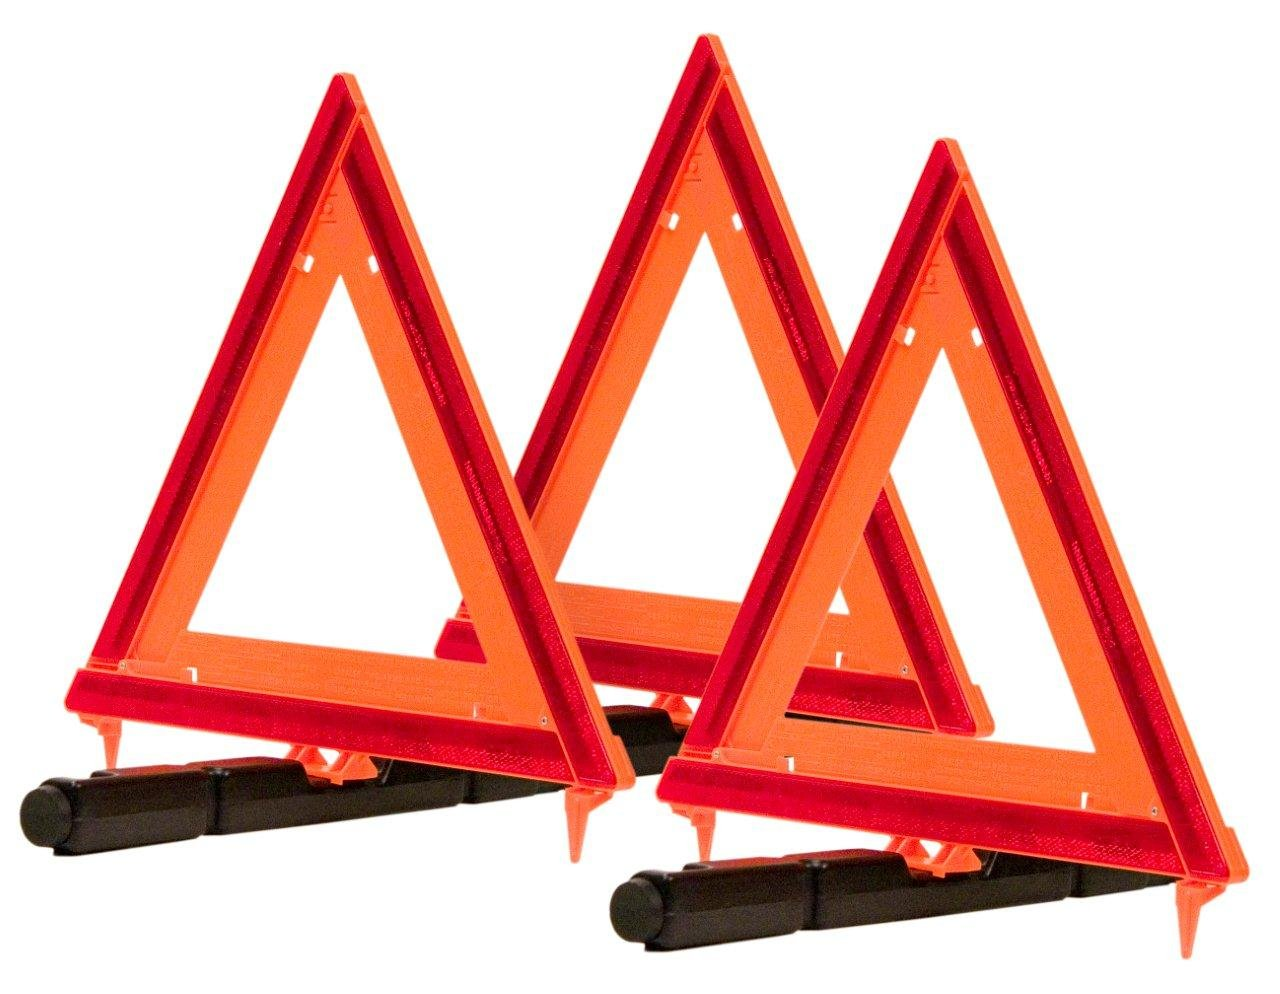 Amazon.com: Triple Warning Triangle RVs break down.. it's a given. Be prepared to avoid making it worse. Triangles help warn others know your vehicle is stopped.  These collapse down, and are weighted.